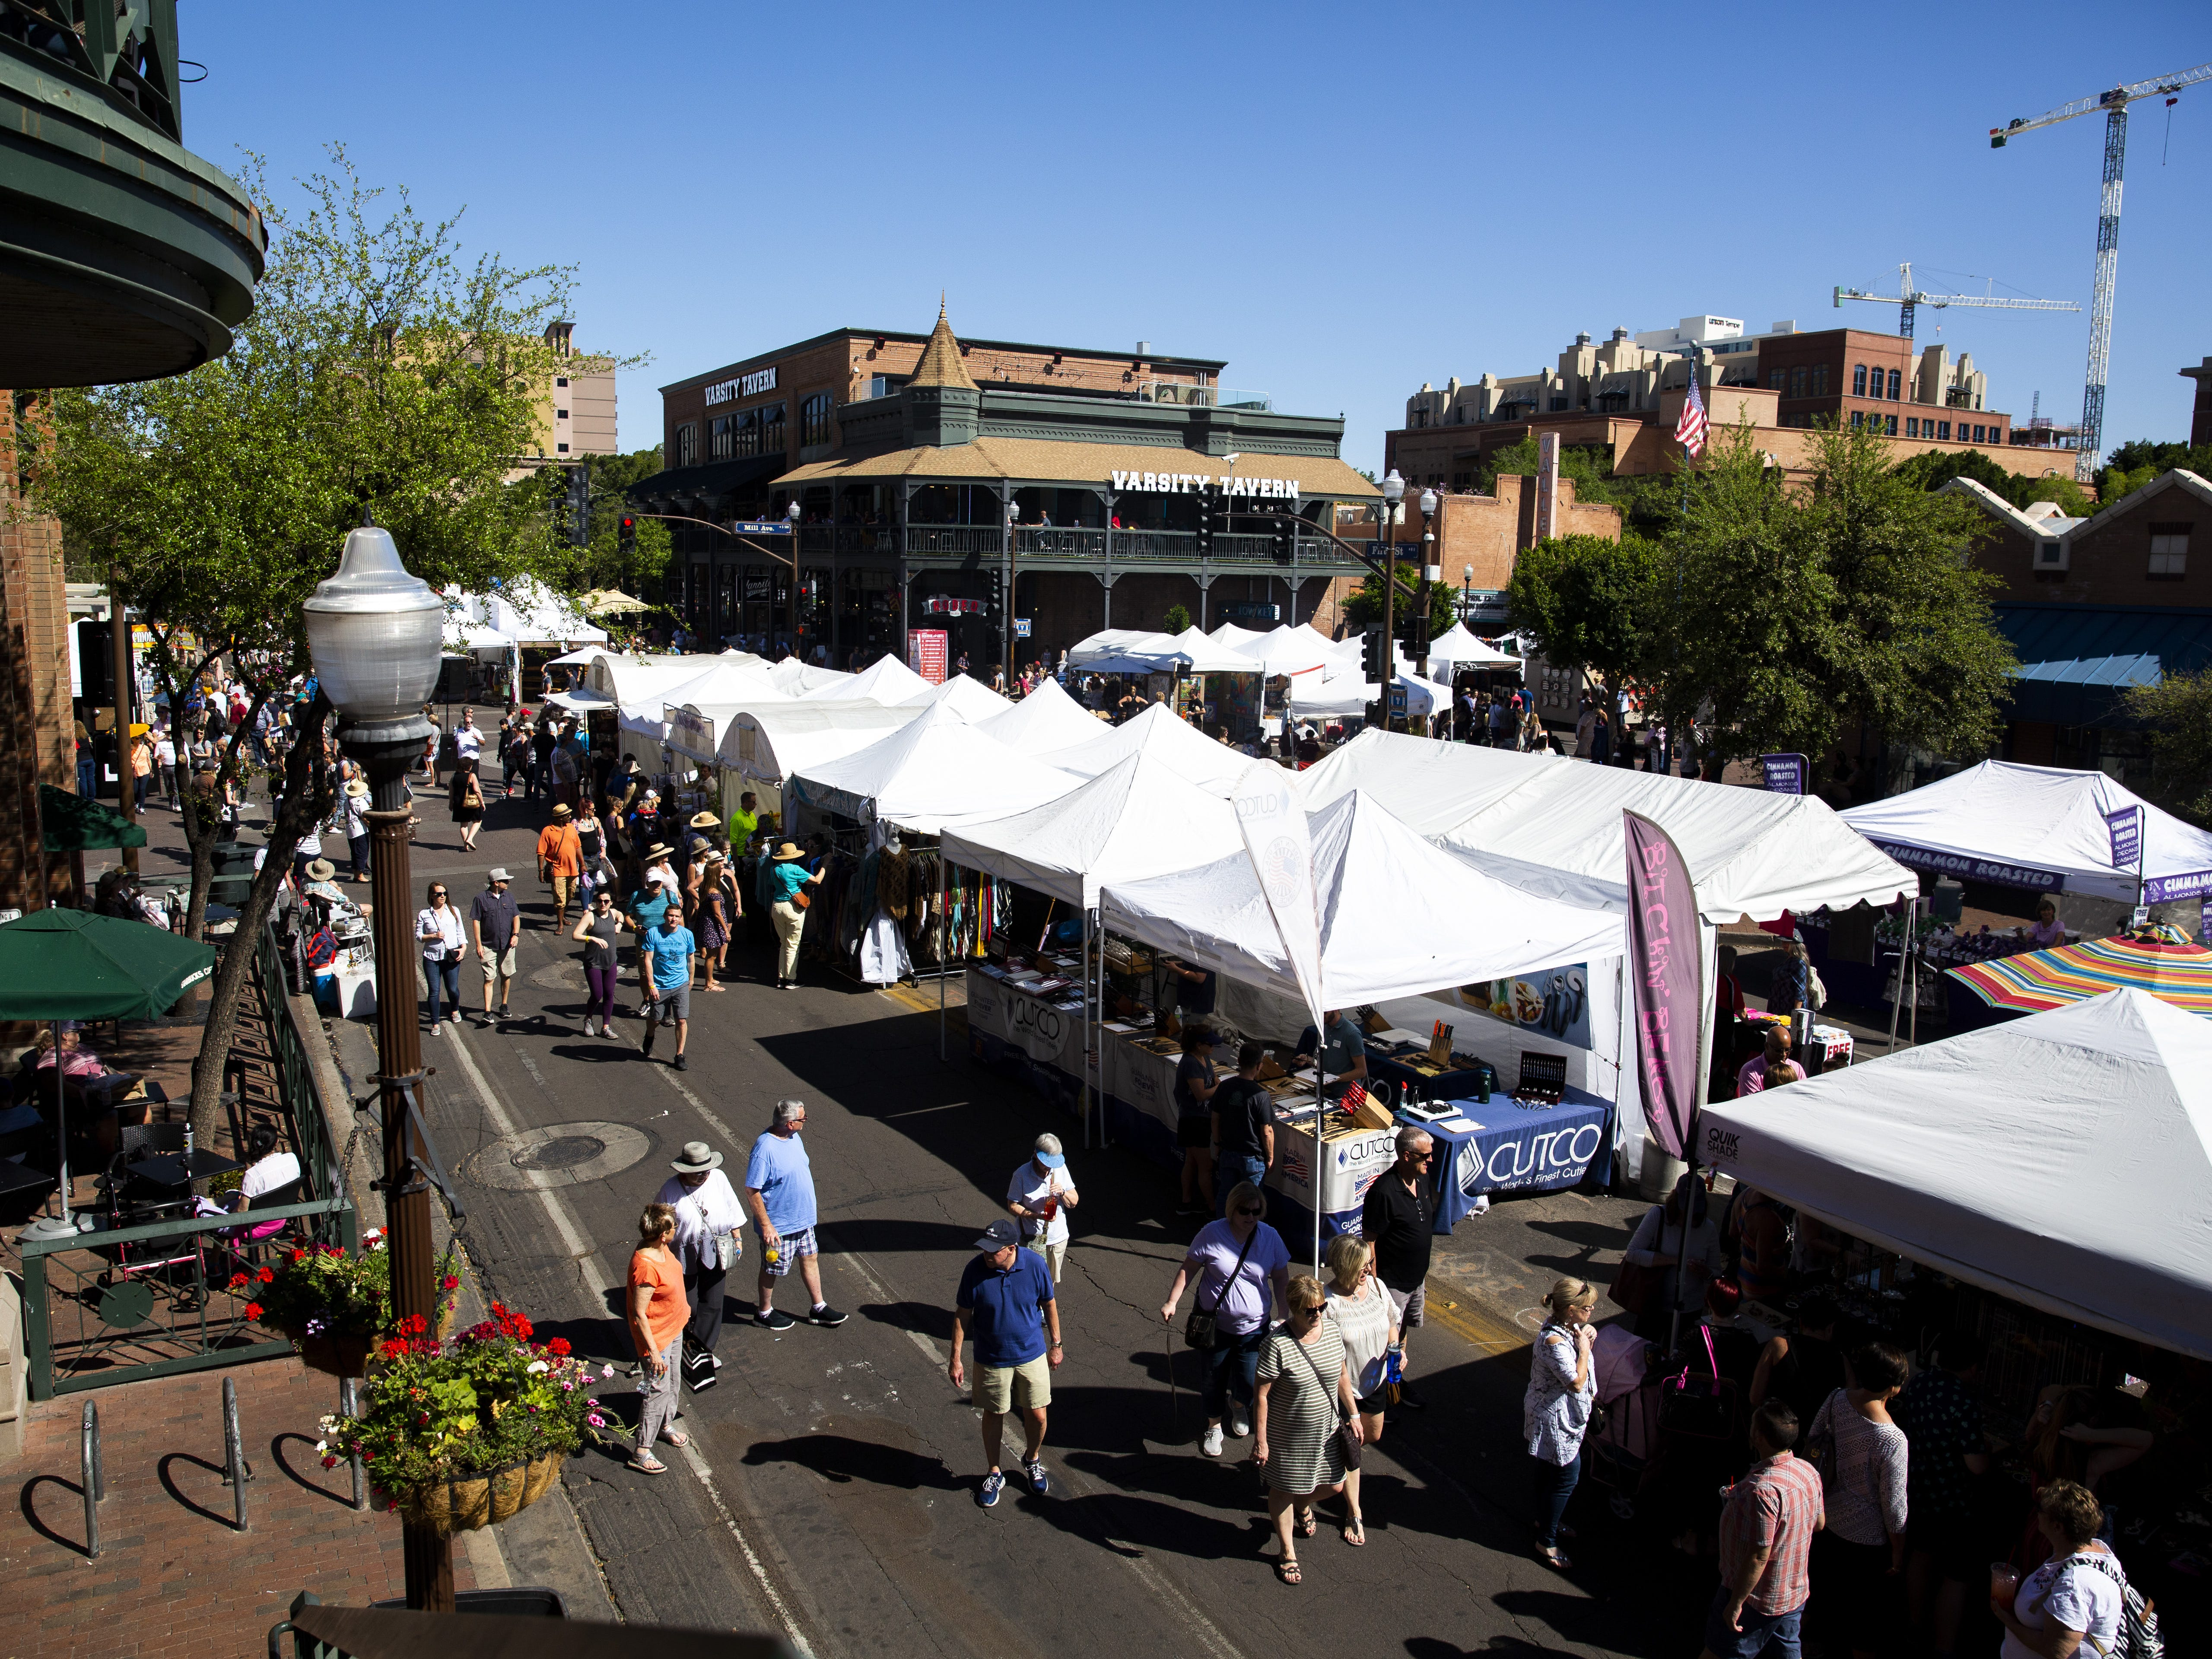 Hundreds of people wander around Mill Avenue and surrounding buildings during the Spring Tempe Festival of the Arts in downtown Tempe on March 30, 2019.